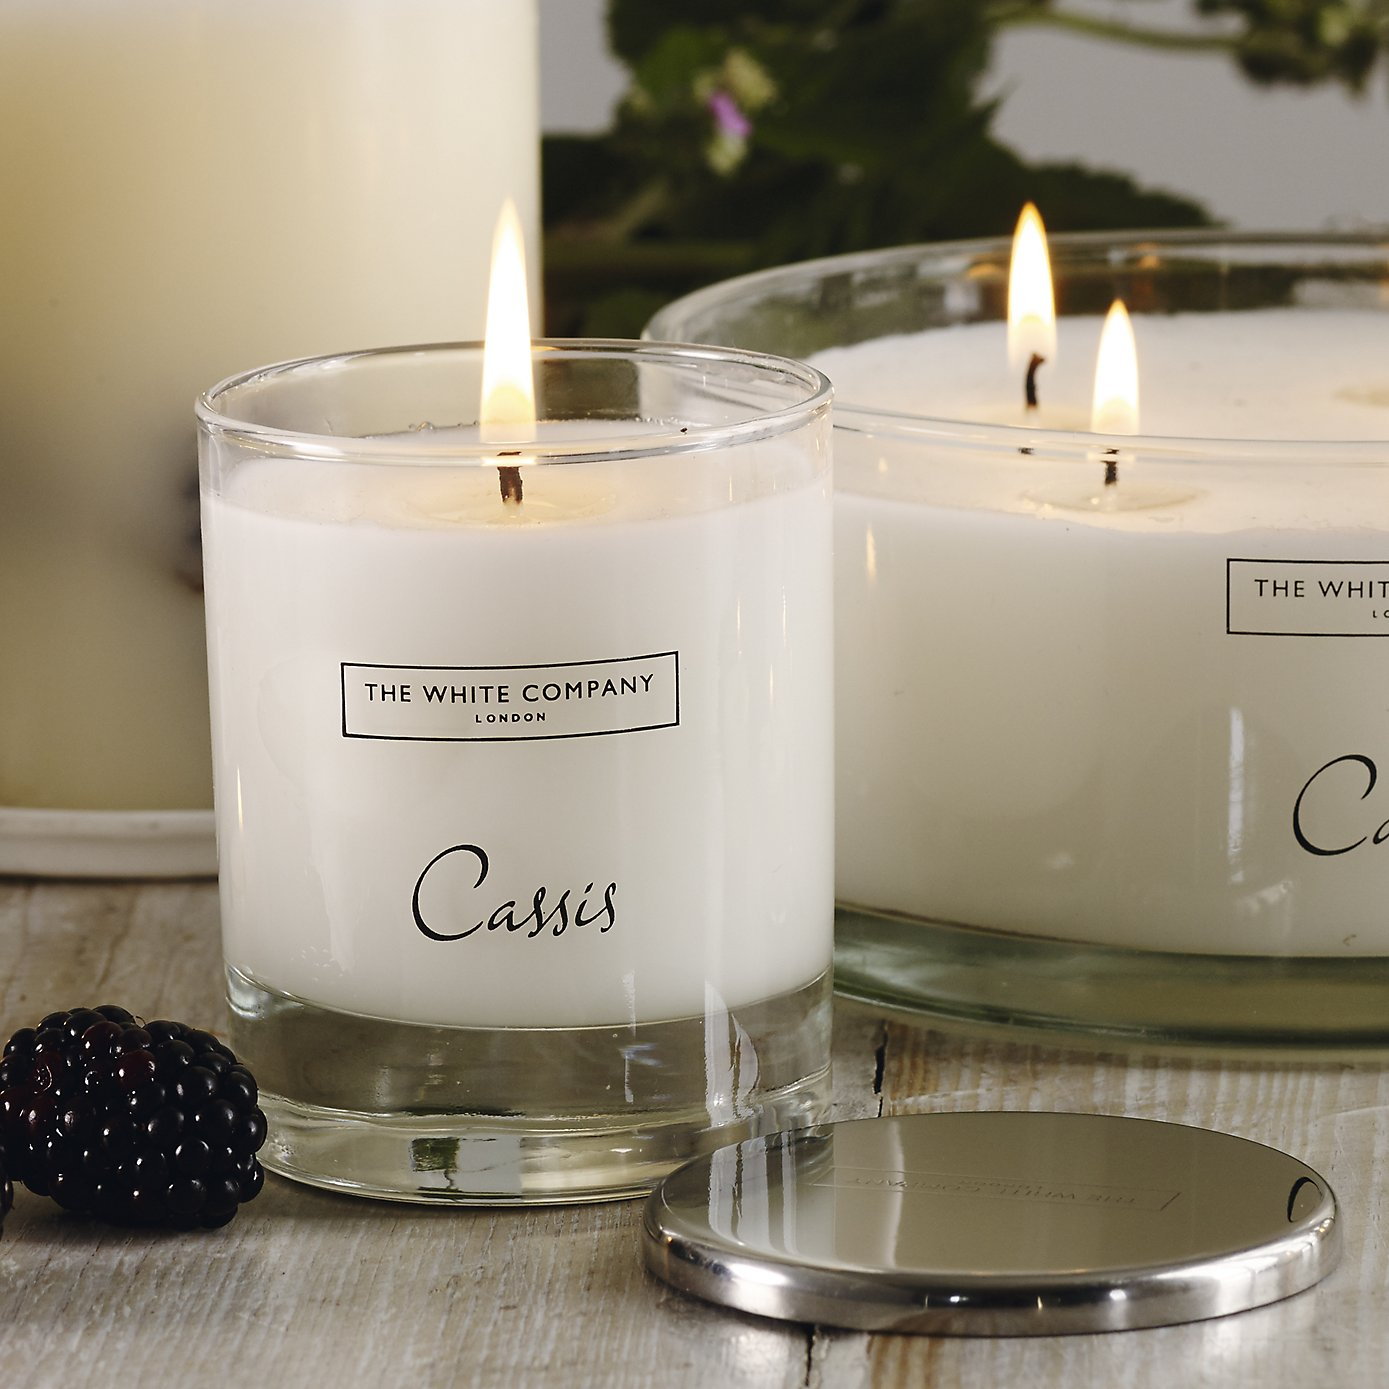 Cassis Signature Candle